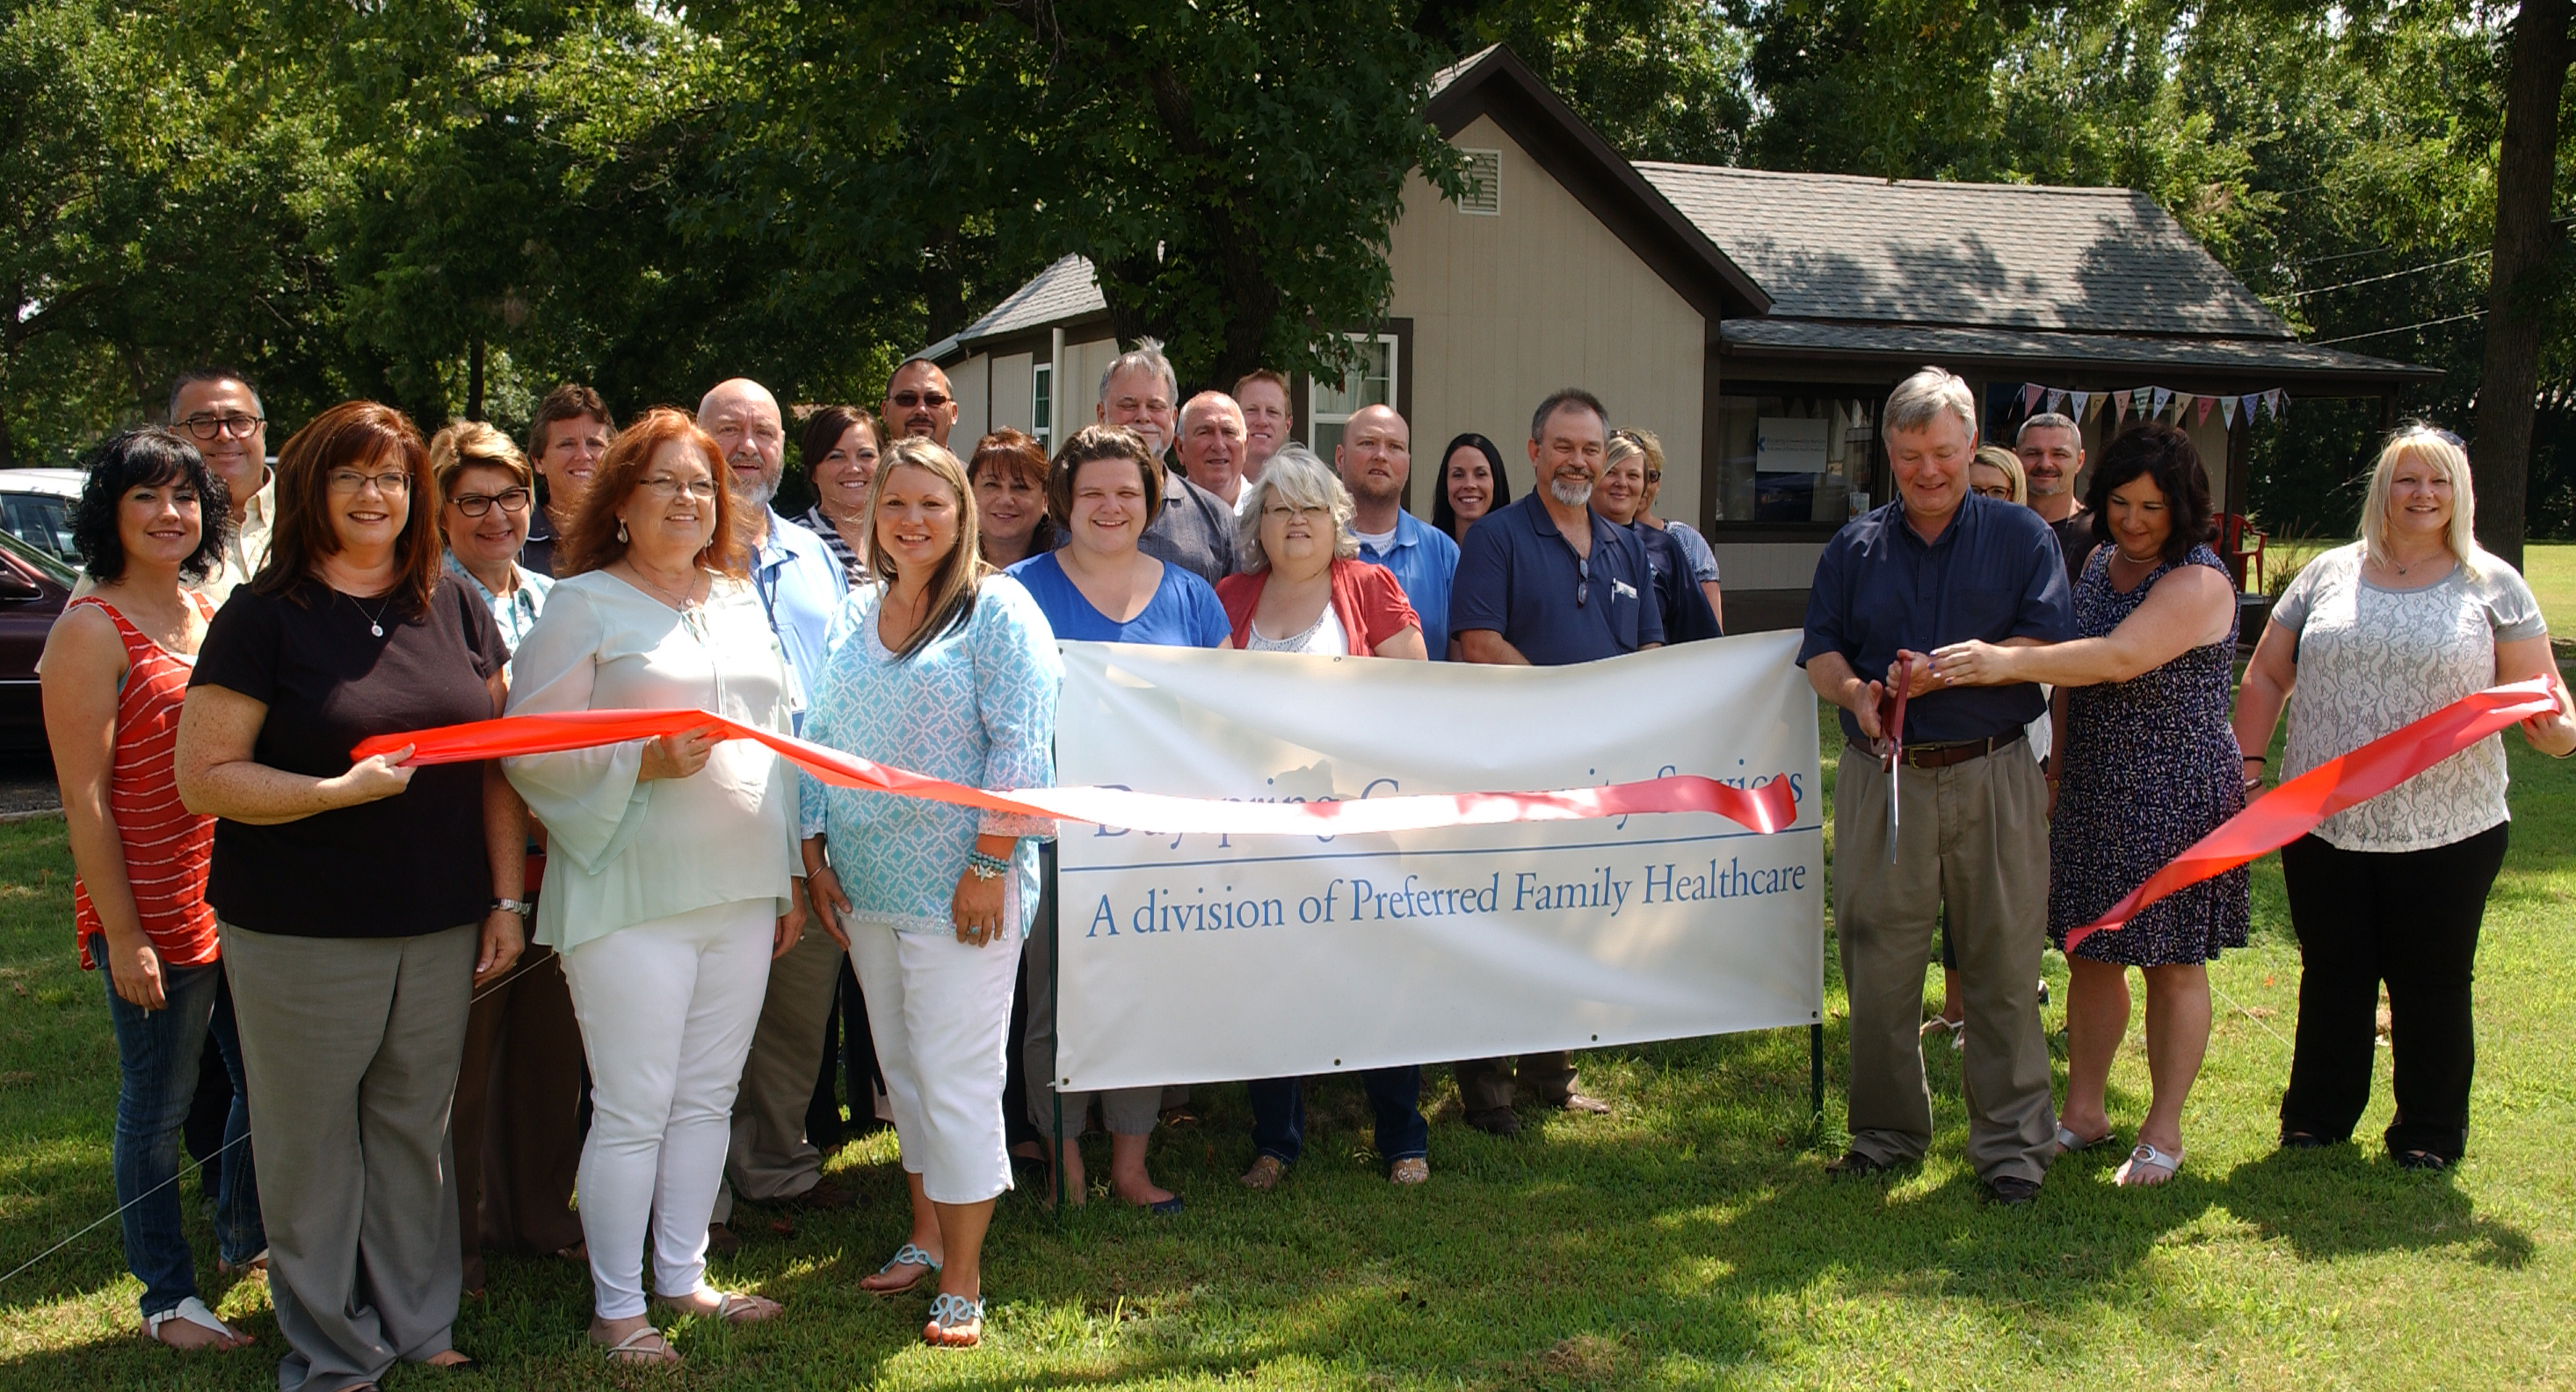 Dayspring Community Services Ribbon Cutting Aug. 2016 location is 900 A. Street Commerce, OK